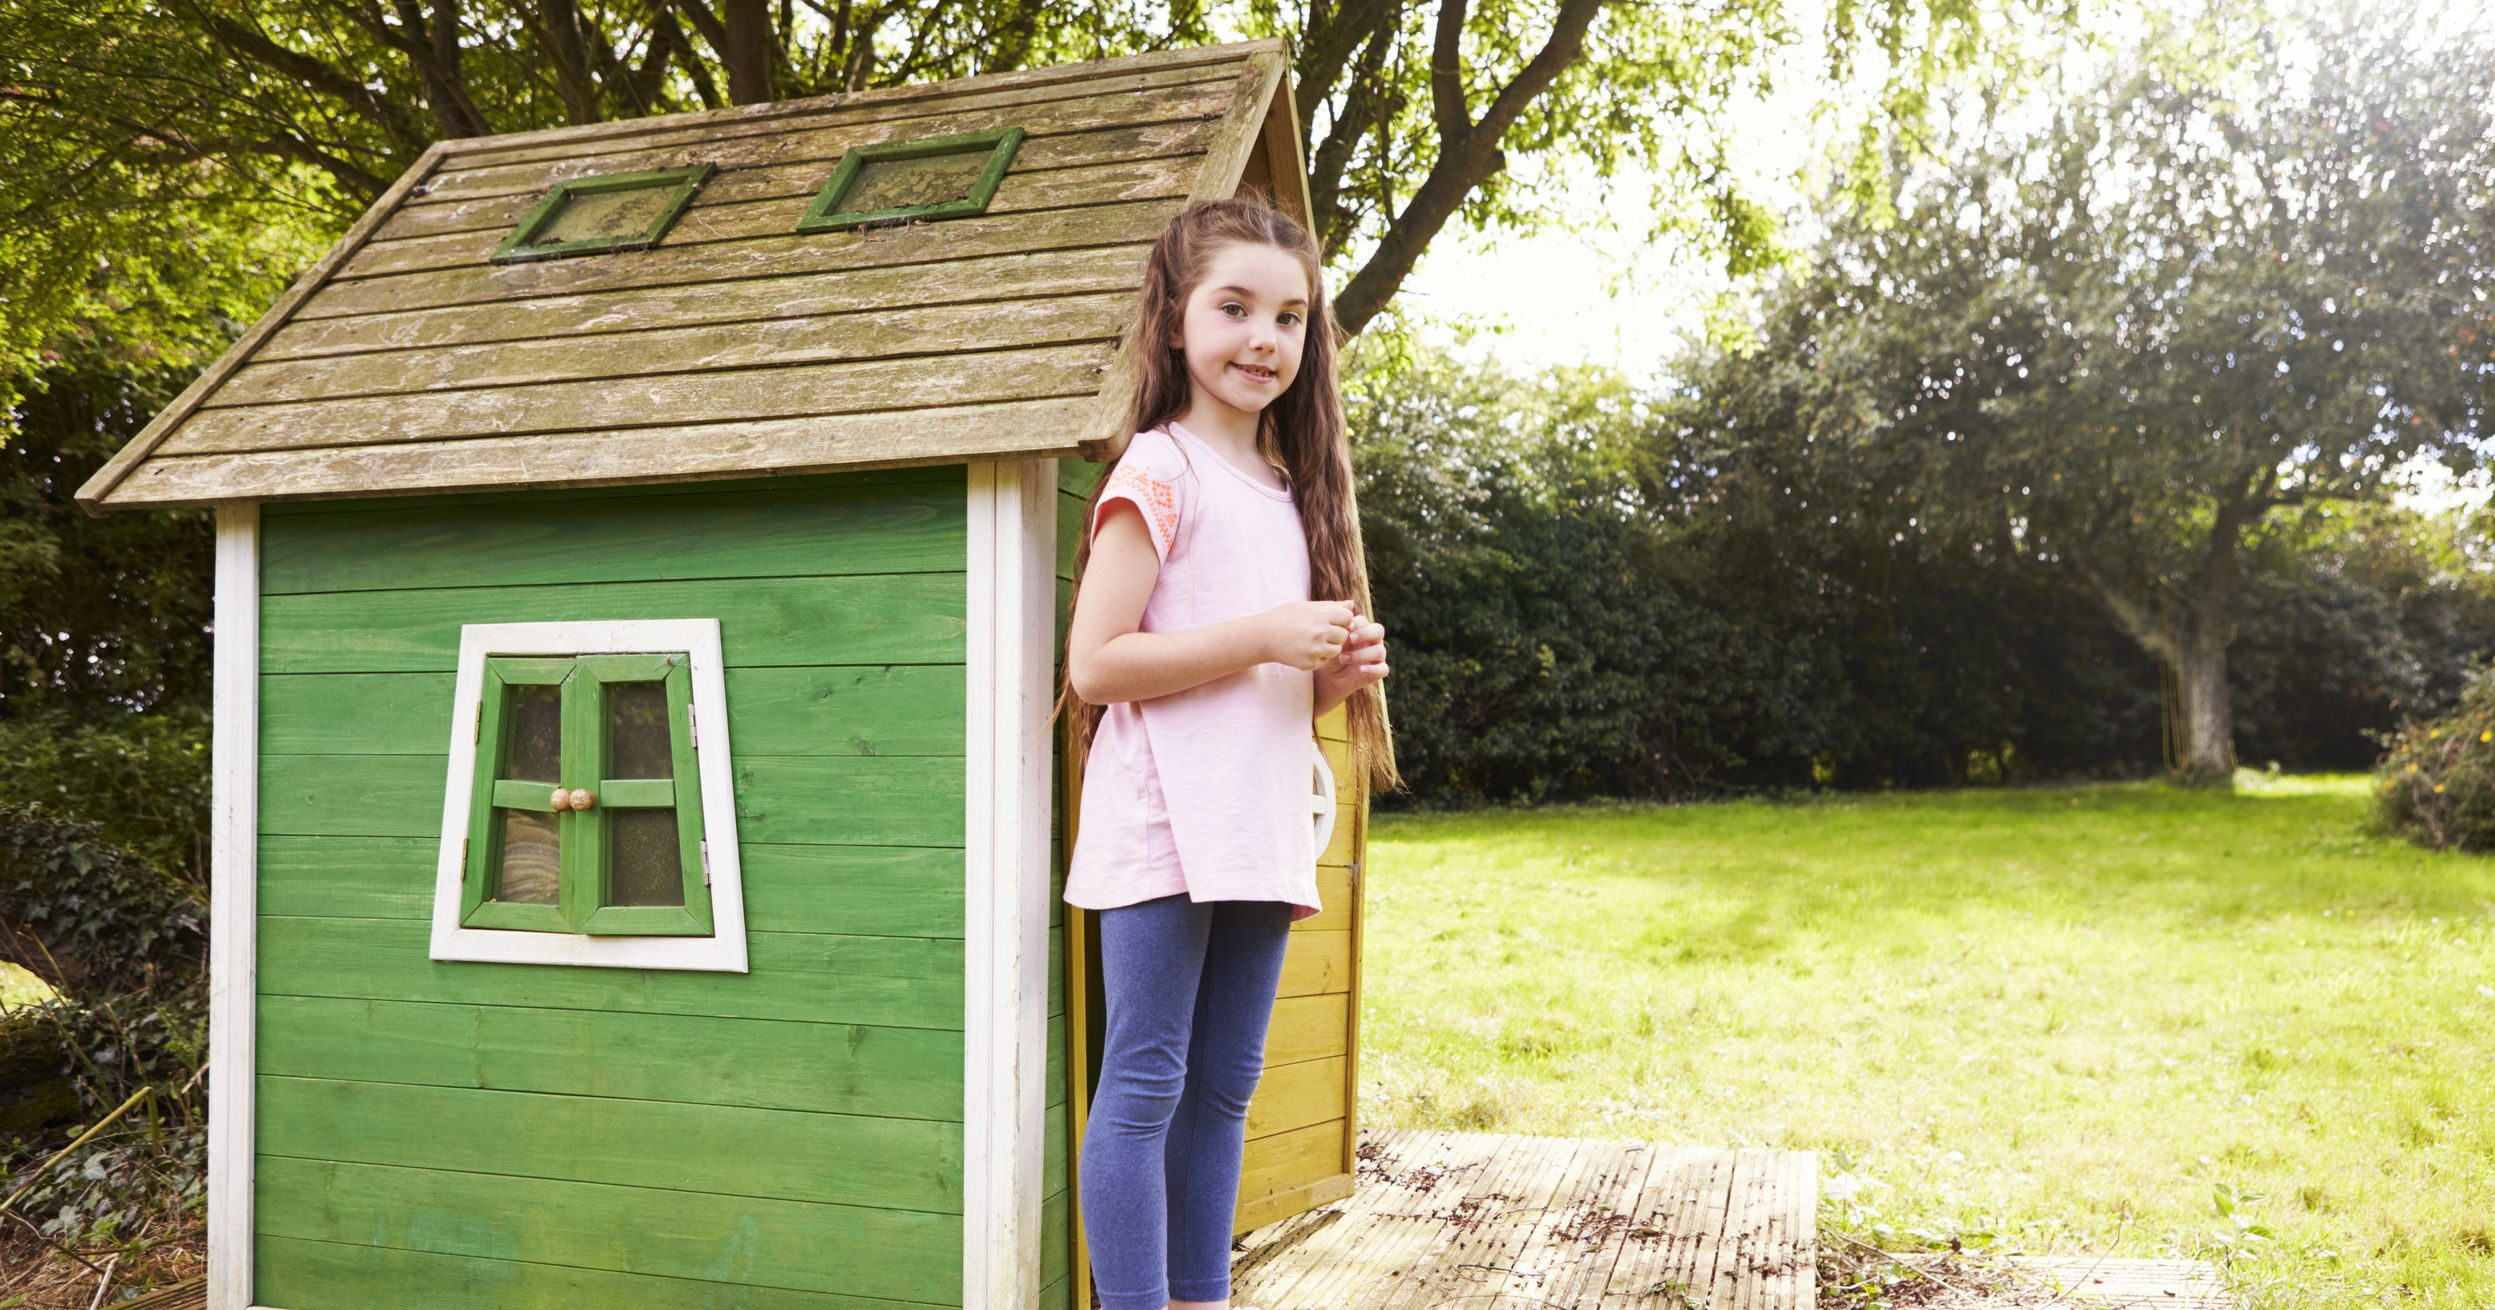 Portrait Of Girl Standing In Garden Next To Playhouse